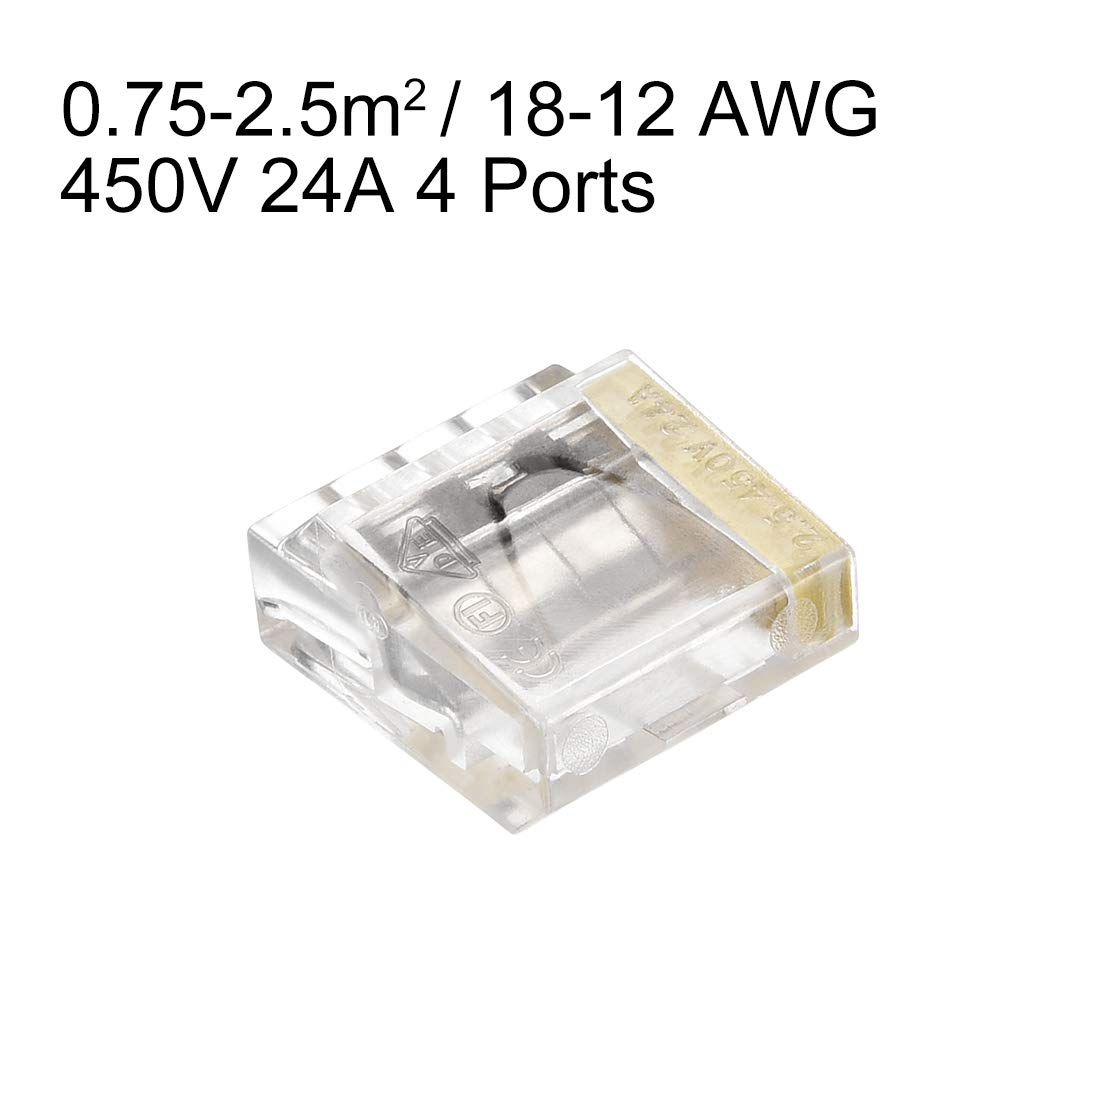 uxcell Push-In Electrical Wire Connectors 14-12 Awg 1-Port 250V Gray 50 Pack